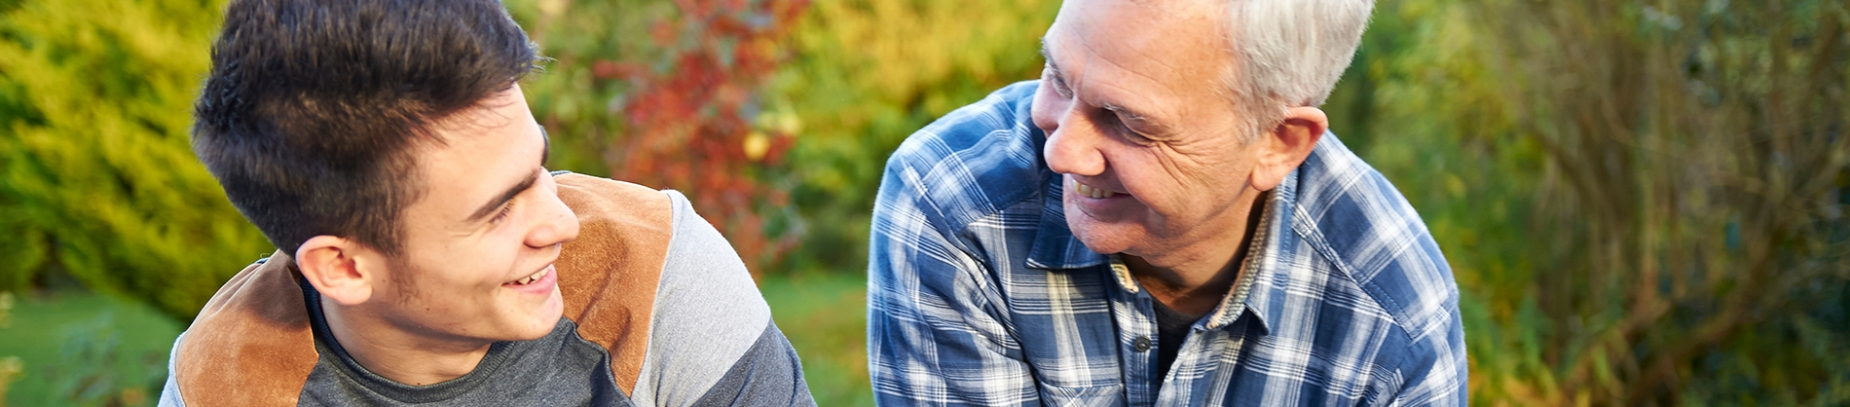 A father and son sat in the garden, smiling at each other